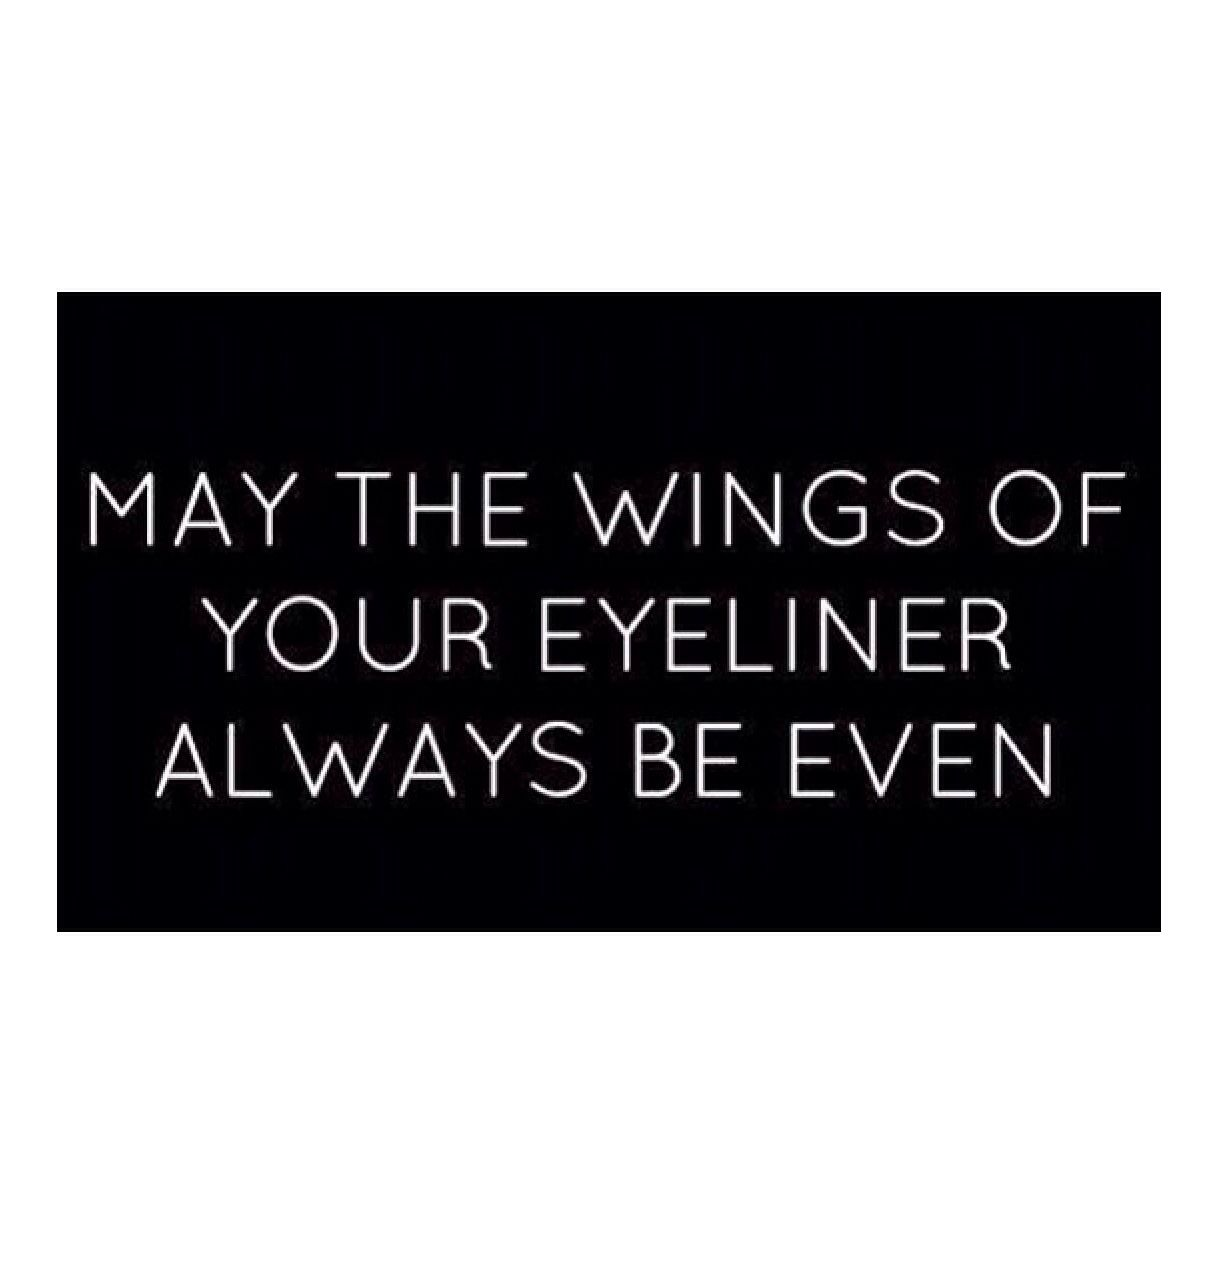 Mascara Quotes Winged Eyeliner  Makeup & Hair Inspo 3  Pinterest  Winged